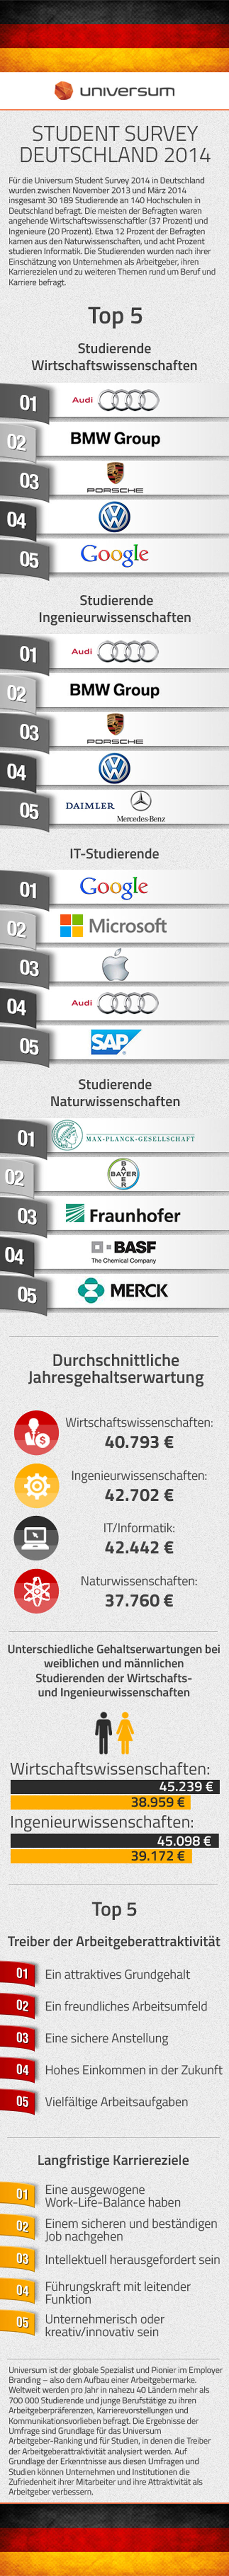 Germany-Top-100-Ideal-Employers-2014-Infographic